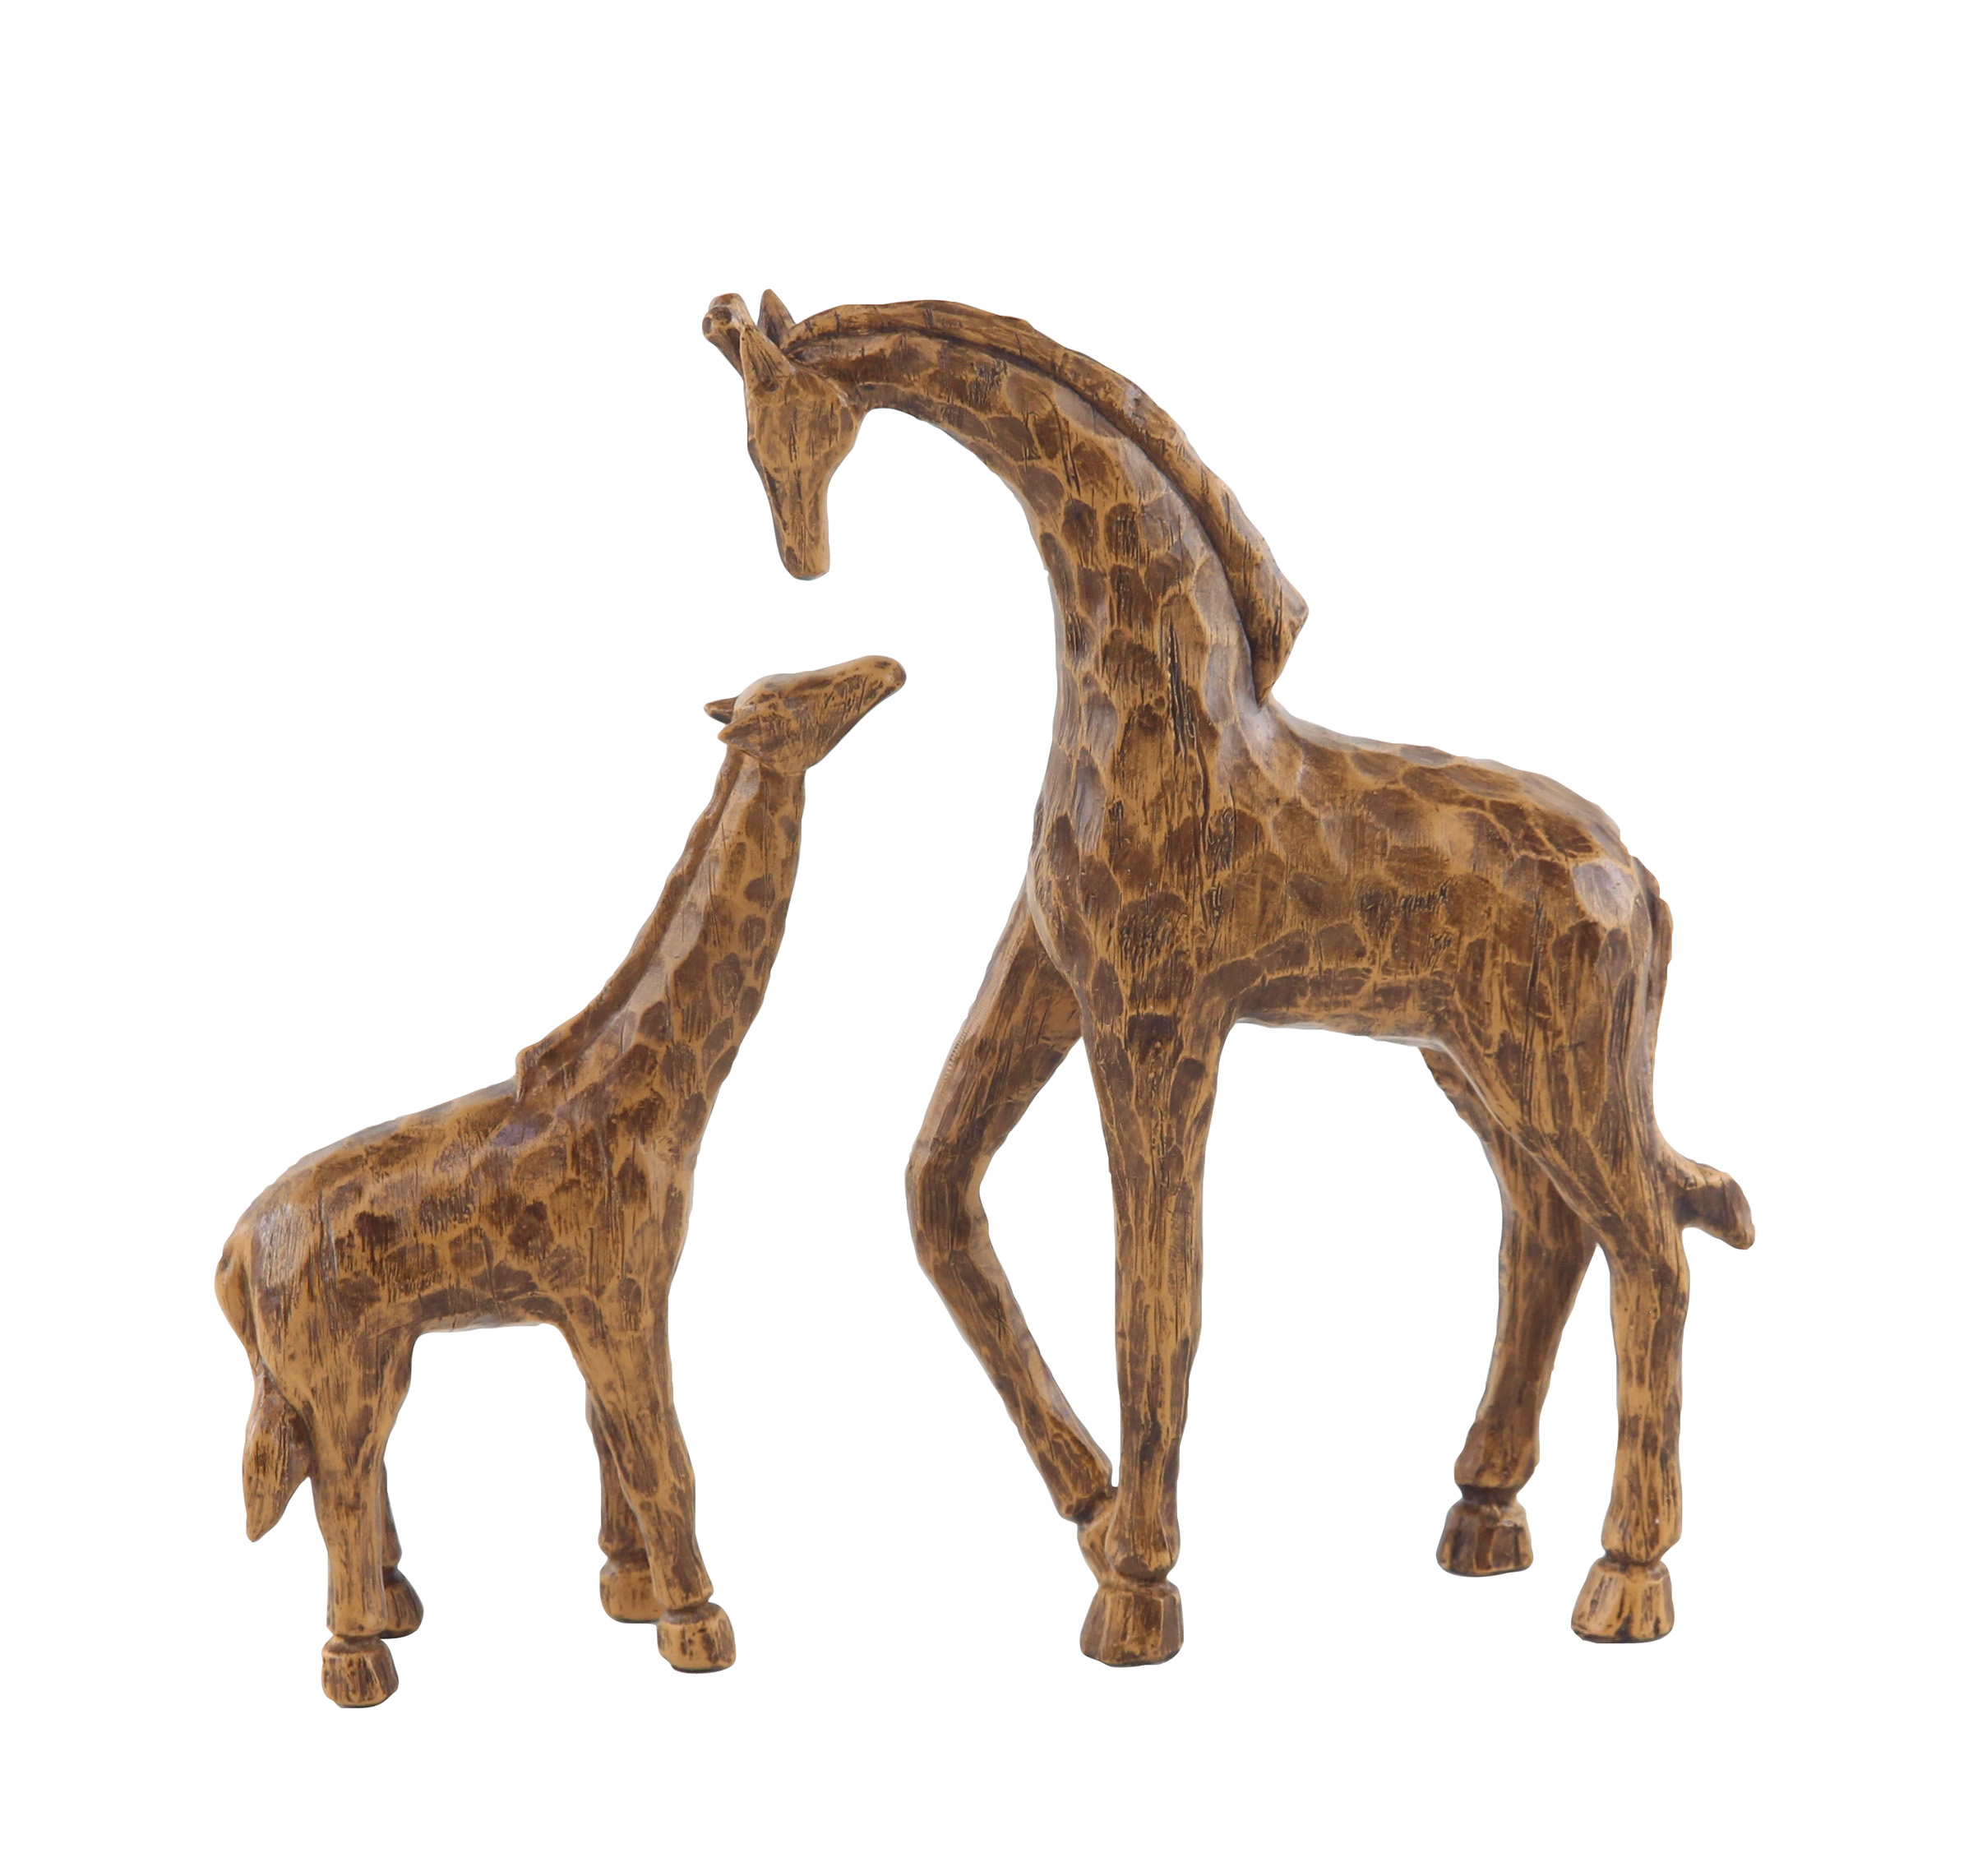 Decmode Eclectic 8 And 11 Inch Brown Polystone Stylized Giraffe Sculptures - Set of 2